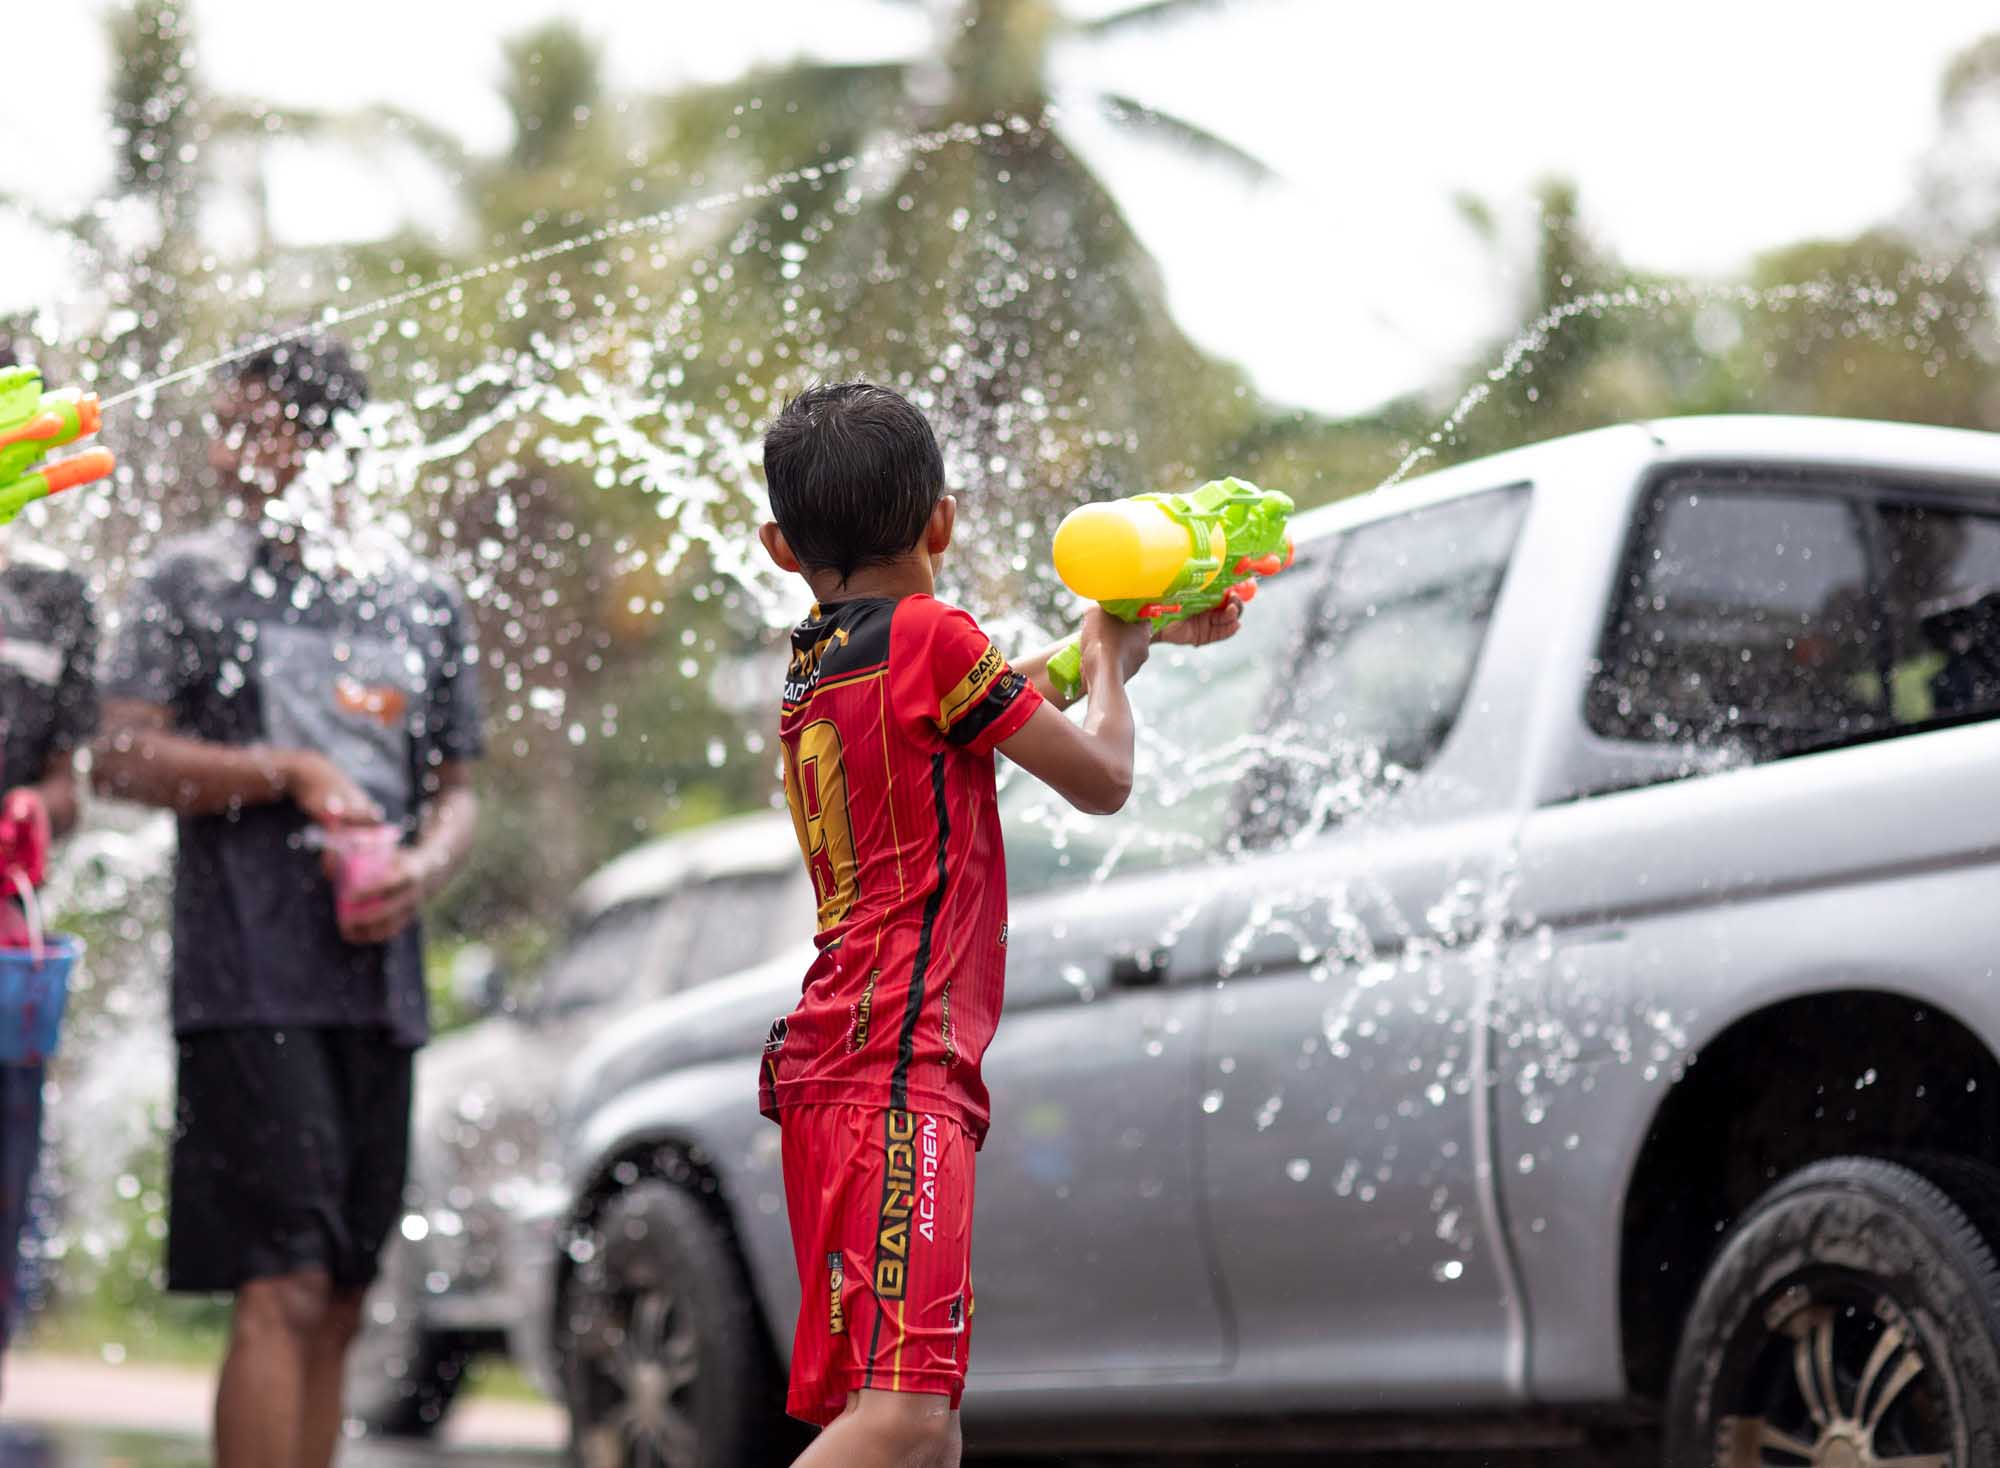 Boy shoots water gun at Songkran water festival in Phuket, Thailand | Travel Photography | Dramatic High Speed